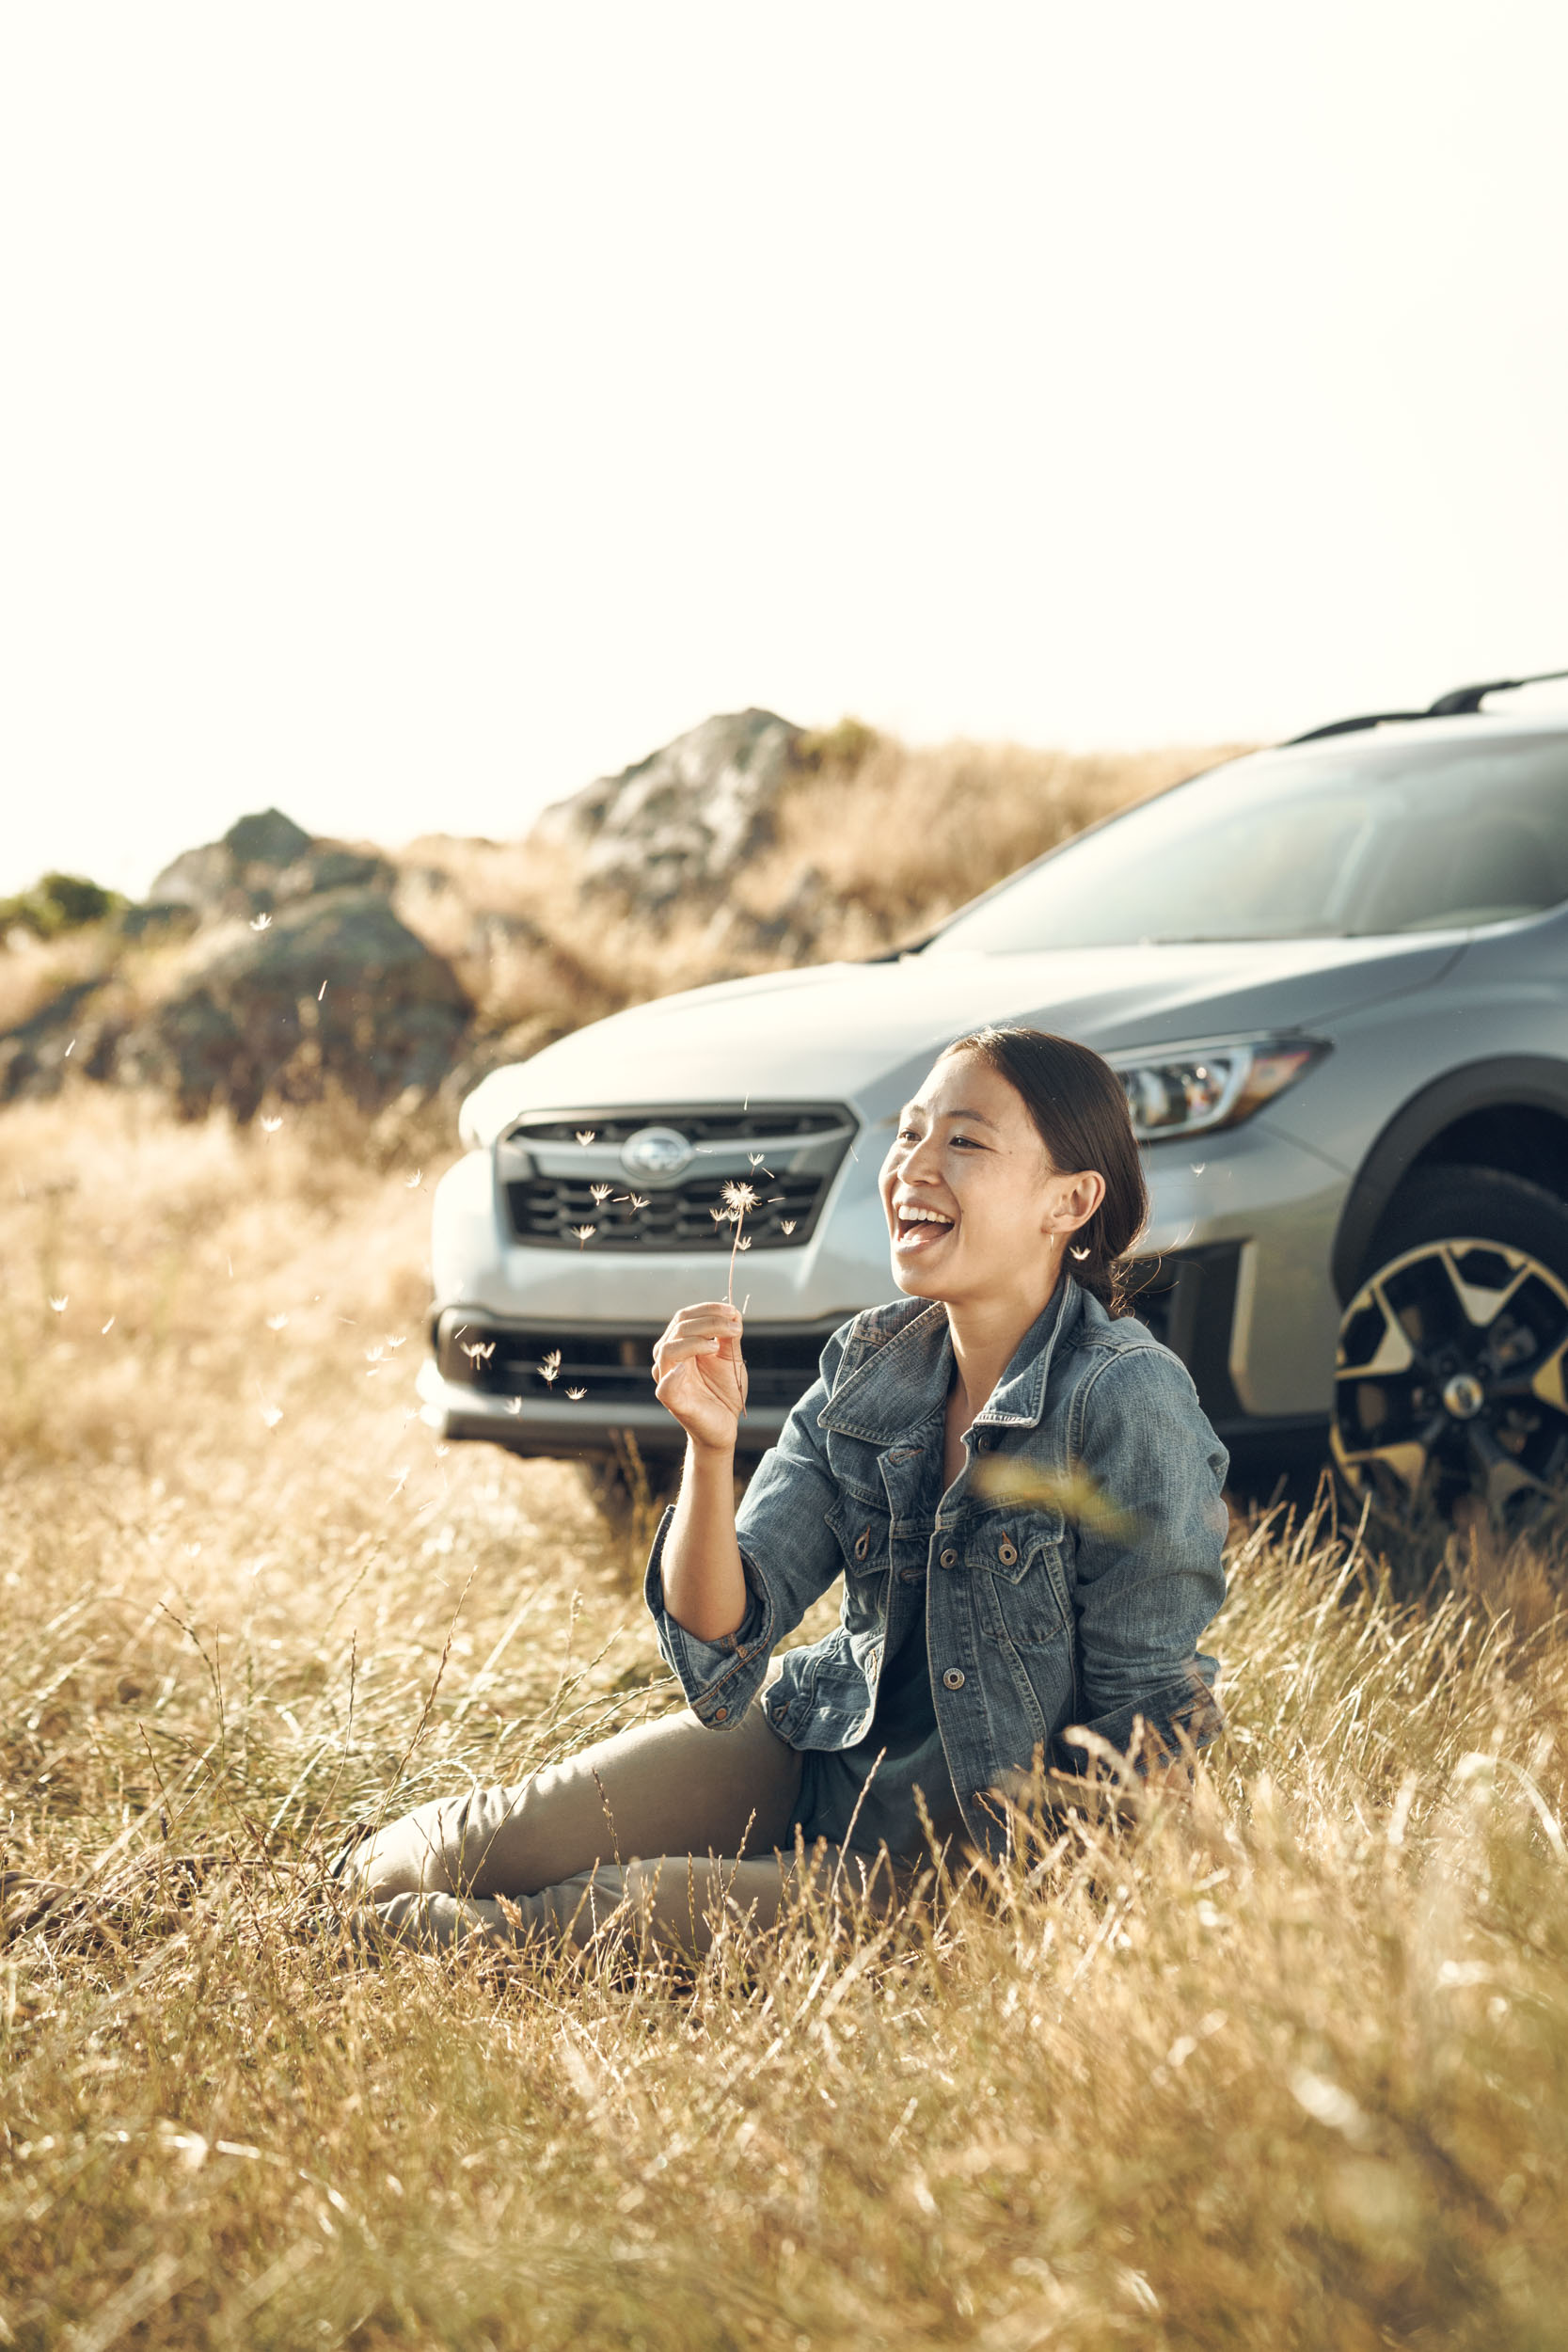 A female sits in tall golden grass and blows on a dandelion in front of her silver Subaru Crosstrek